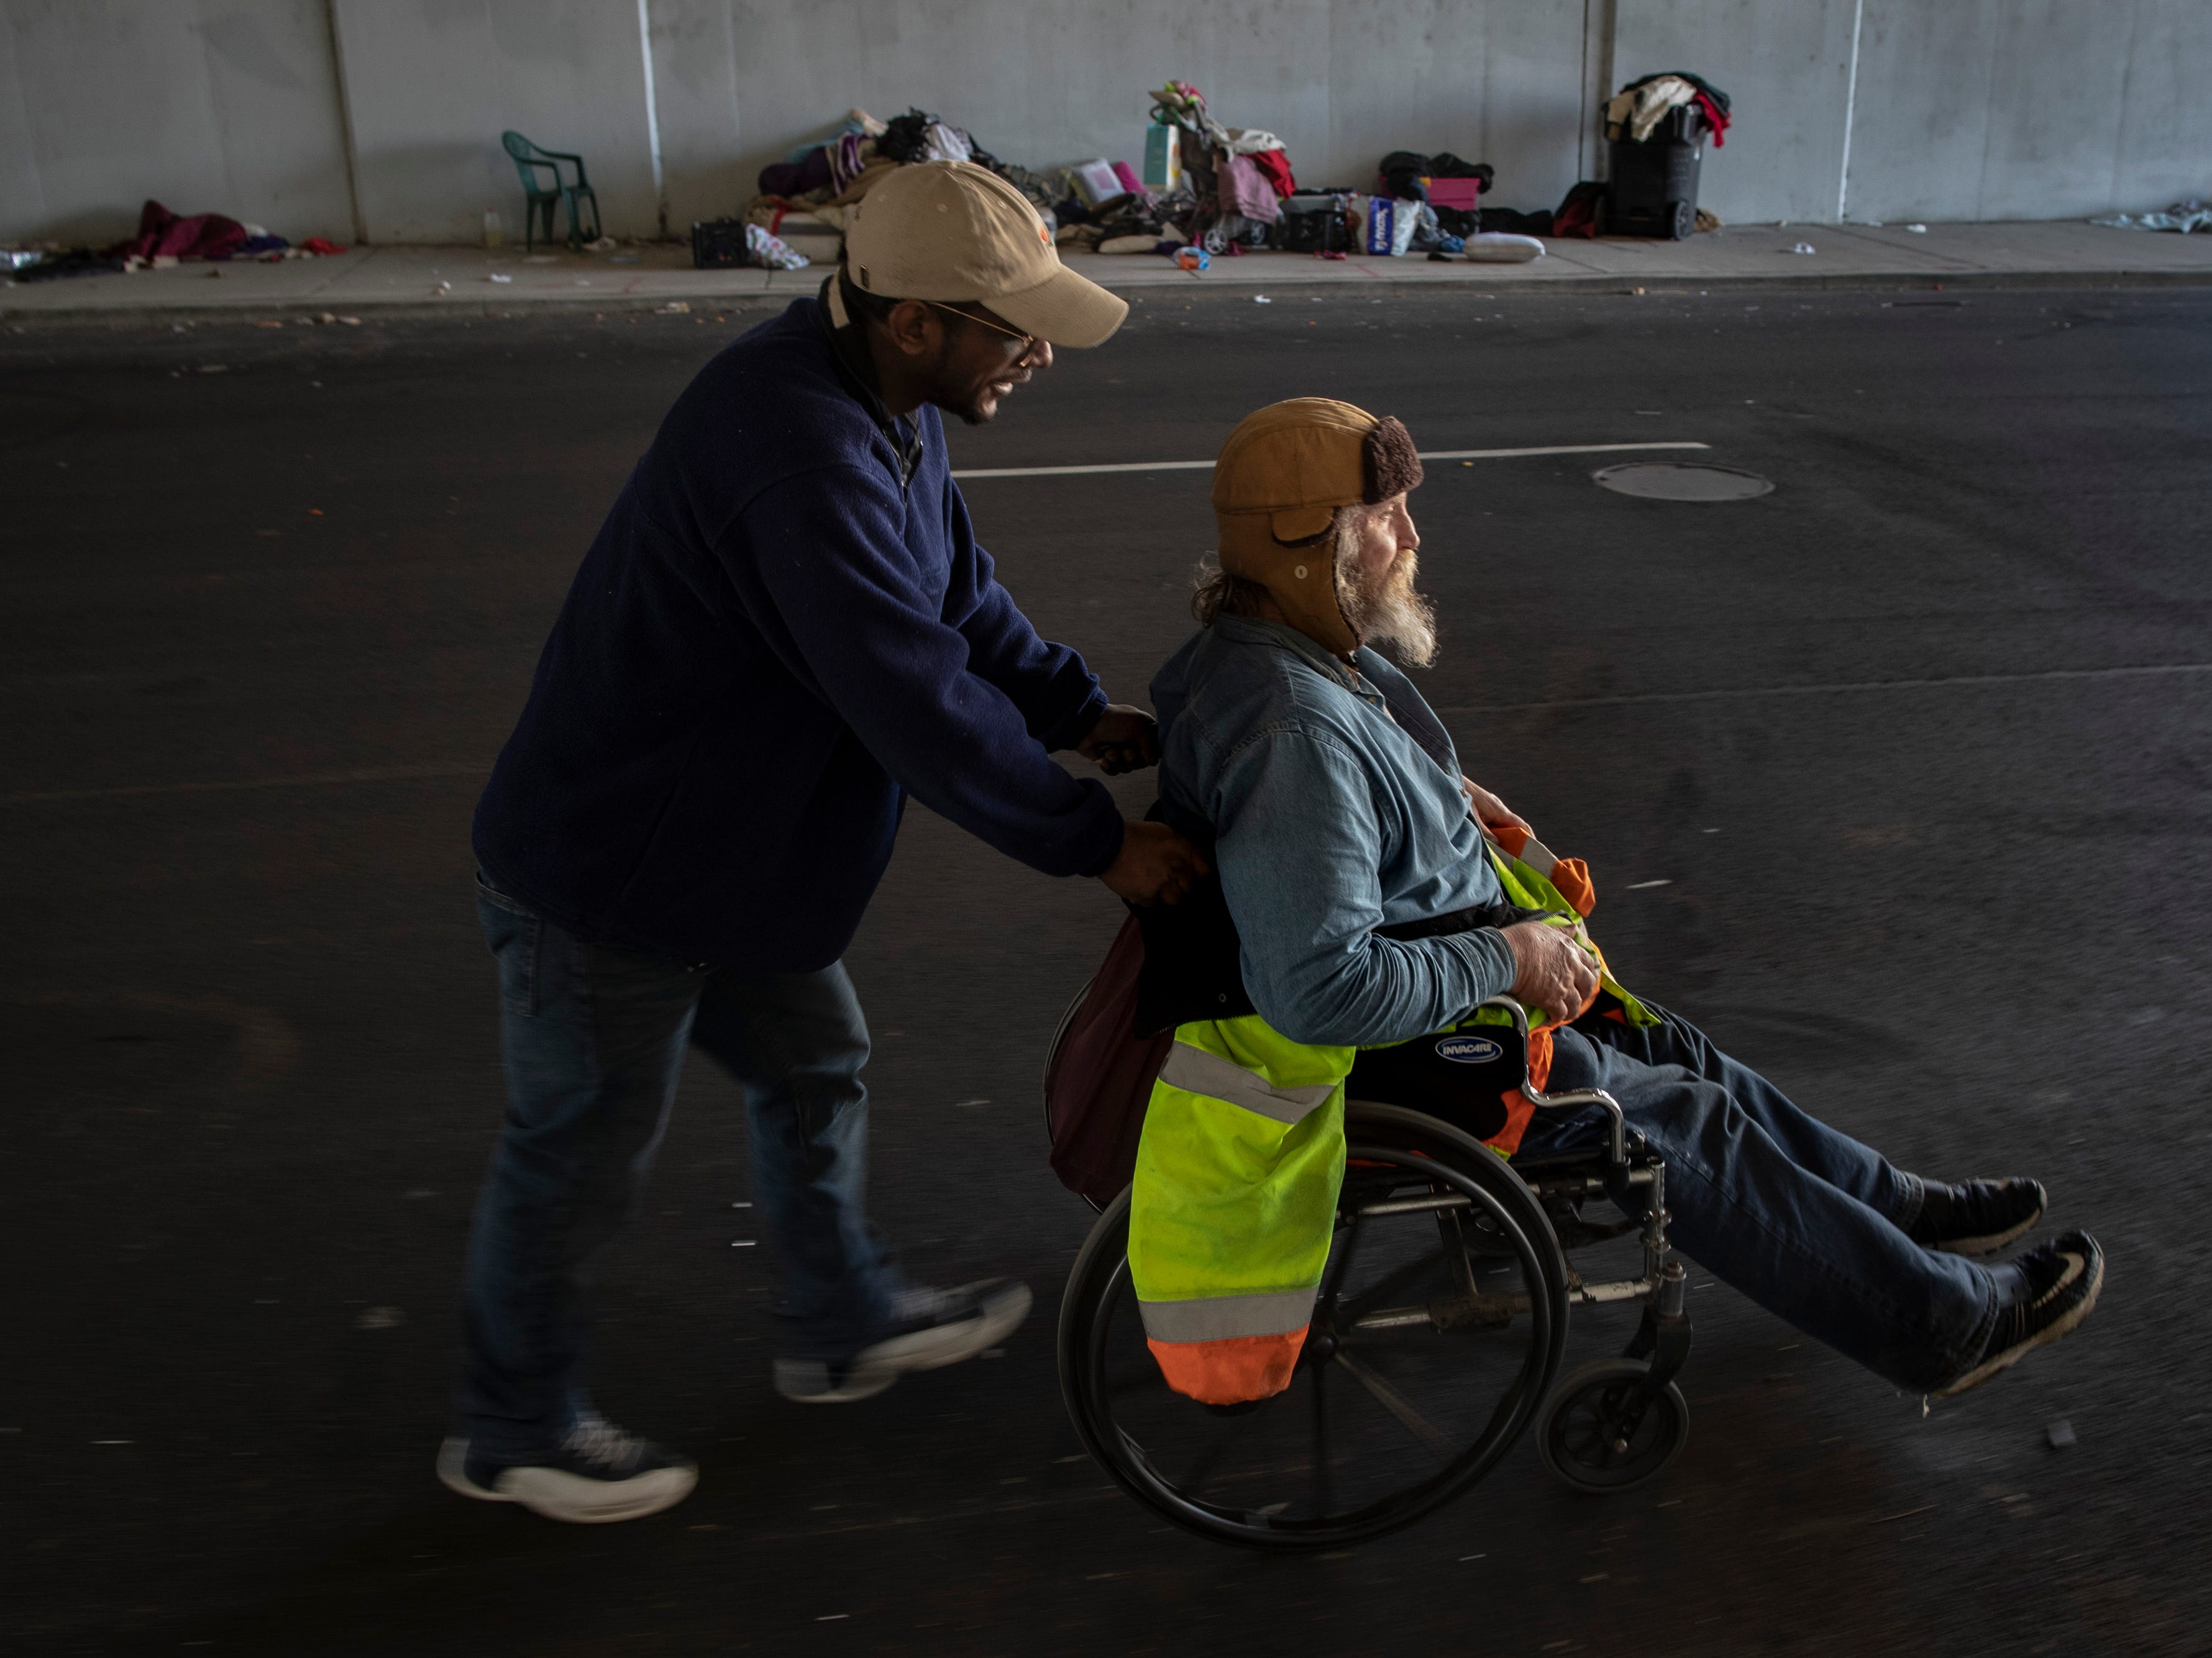 """Timothy, left, pushes his friend Richard Greene in his wheelchar at the homeless camp area under the bypasses along East Jefferson Street and Jackson Street in downtown Louisville. """"I've been homeless seven months and three weeks,"""" Greene said. """"I was hit by a car and it ruined my life."""" March 18, 2019"""